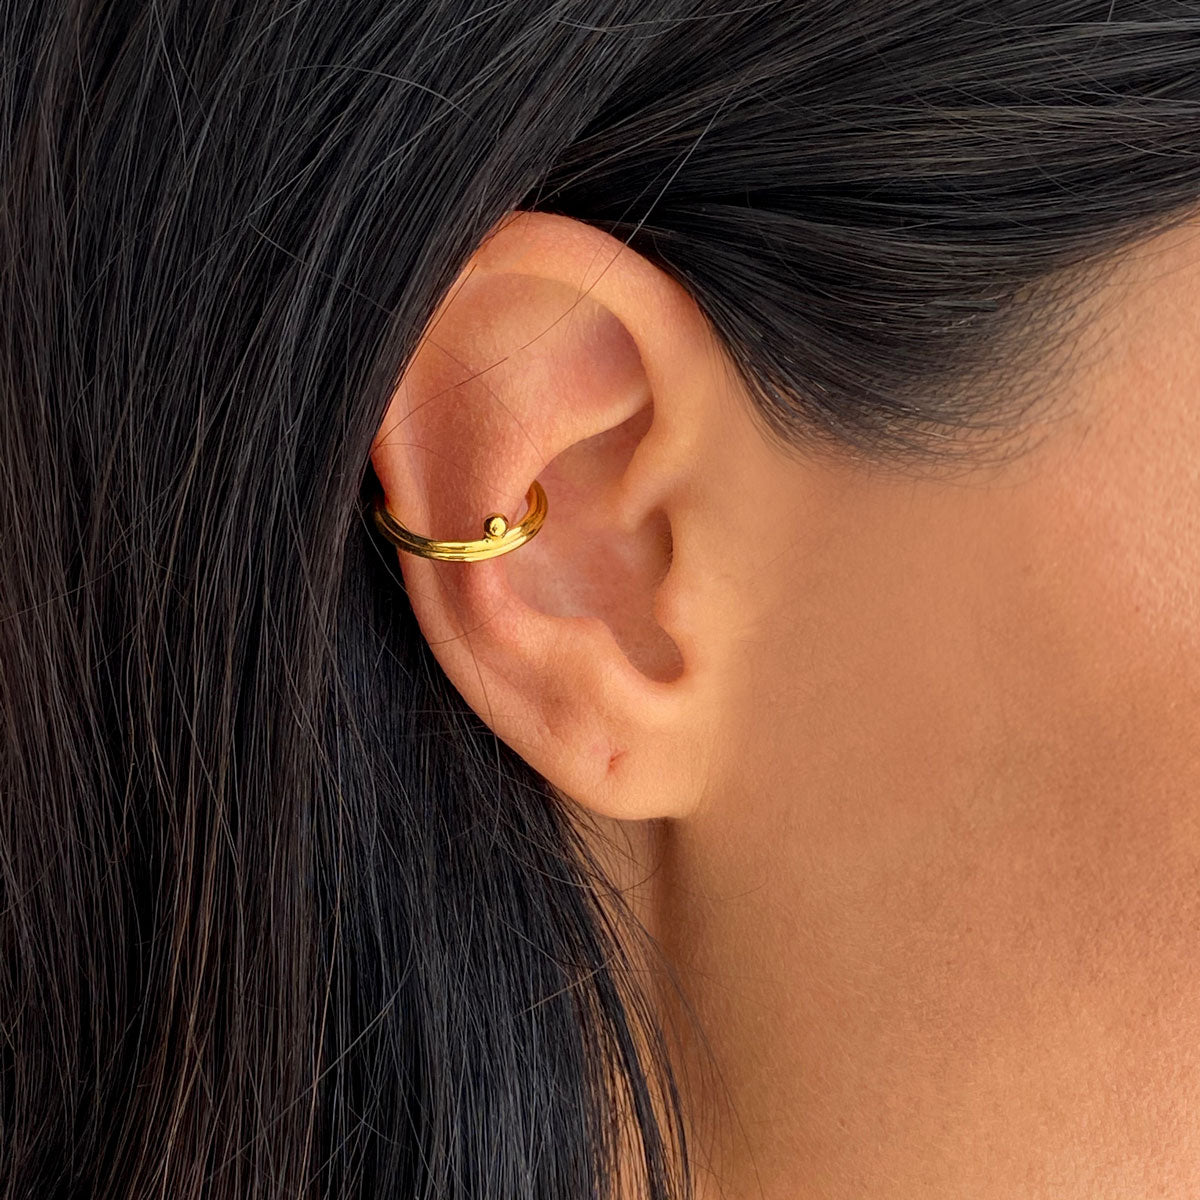 ear cuff silver gold vermeil made by artisans colombian jewelry